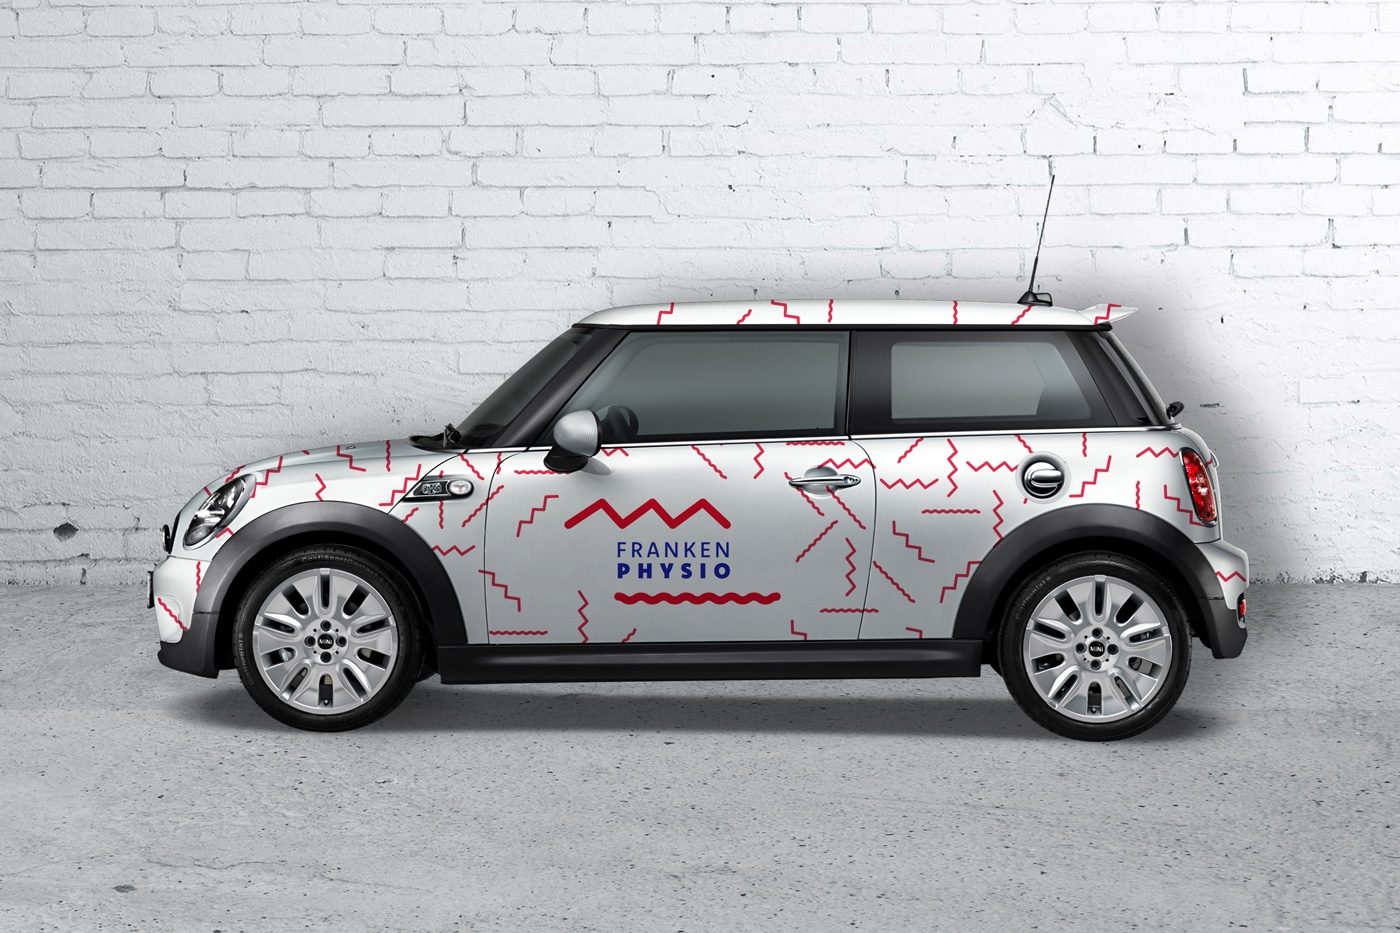 Konzept Mini Cooper Design Physiotherapie Praxis